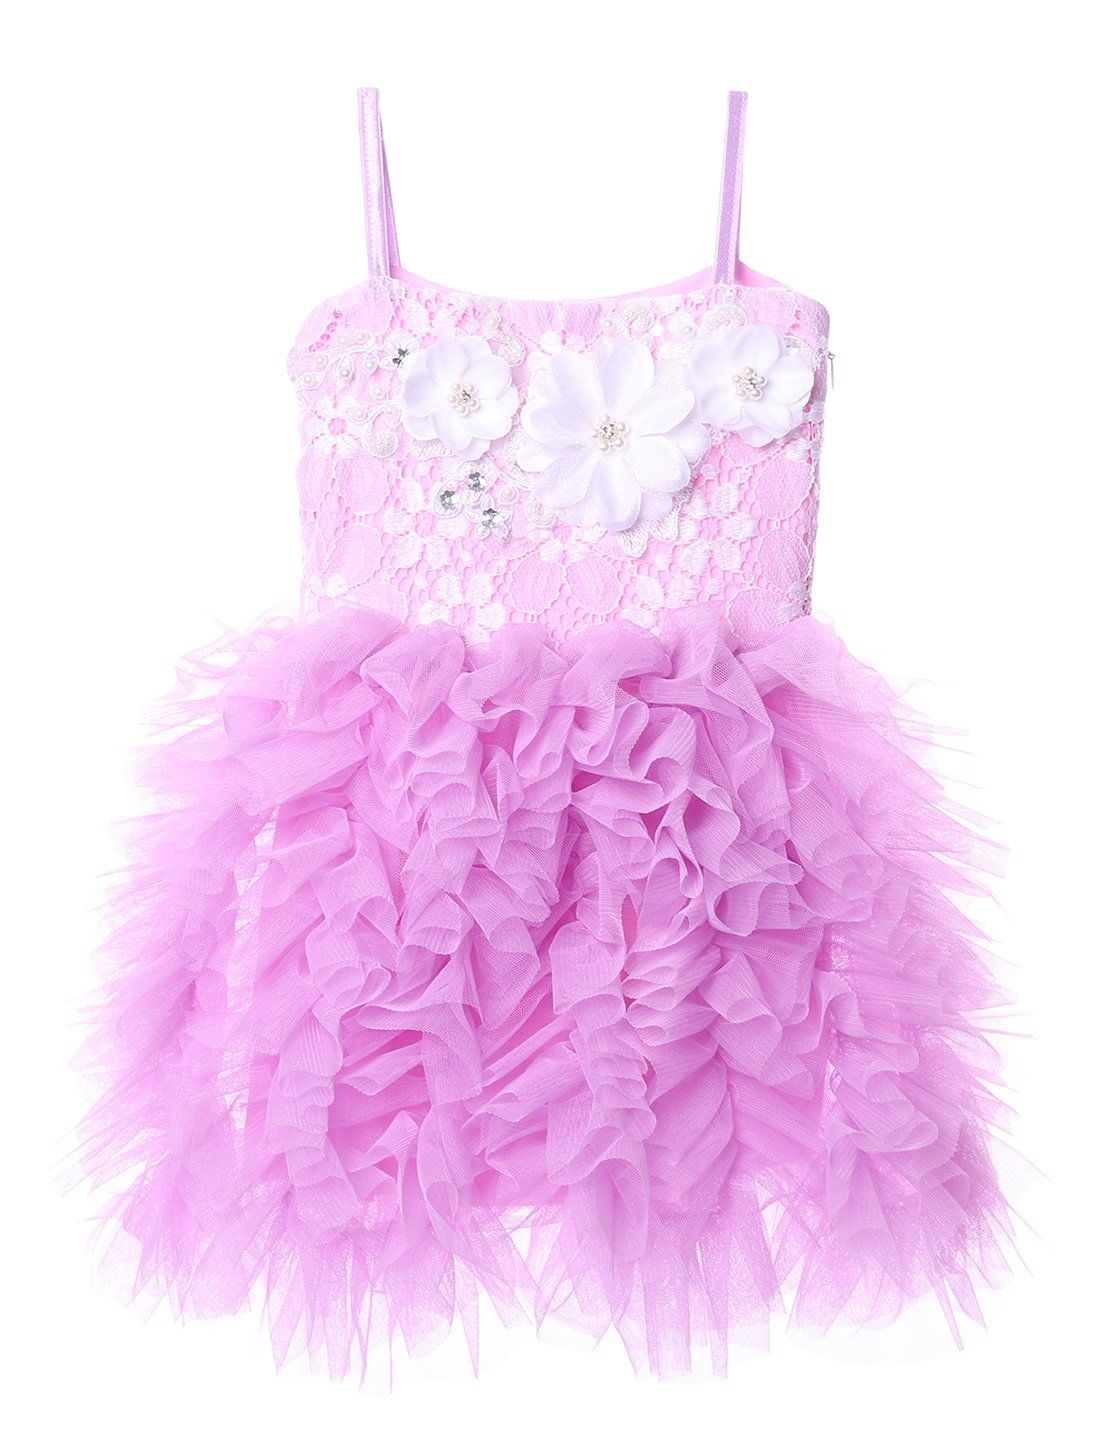 Cilucu Girls Dress Kids Party Dress Toddler Tutu Pageant Beaded Lace Dresses for Flower Girl Baby Pink//White Gown Birthday